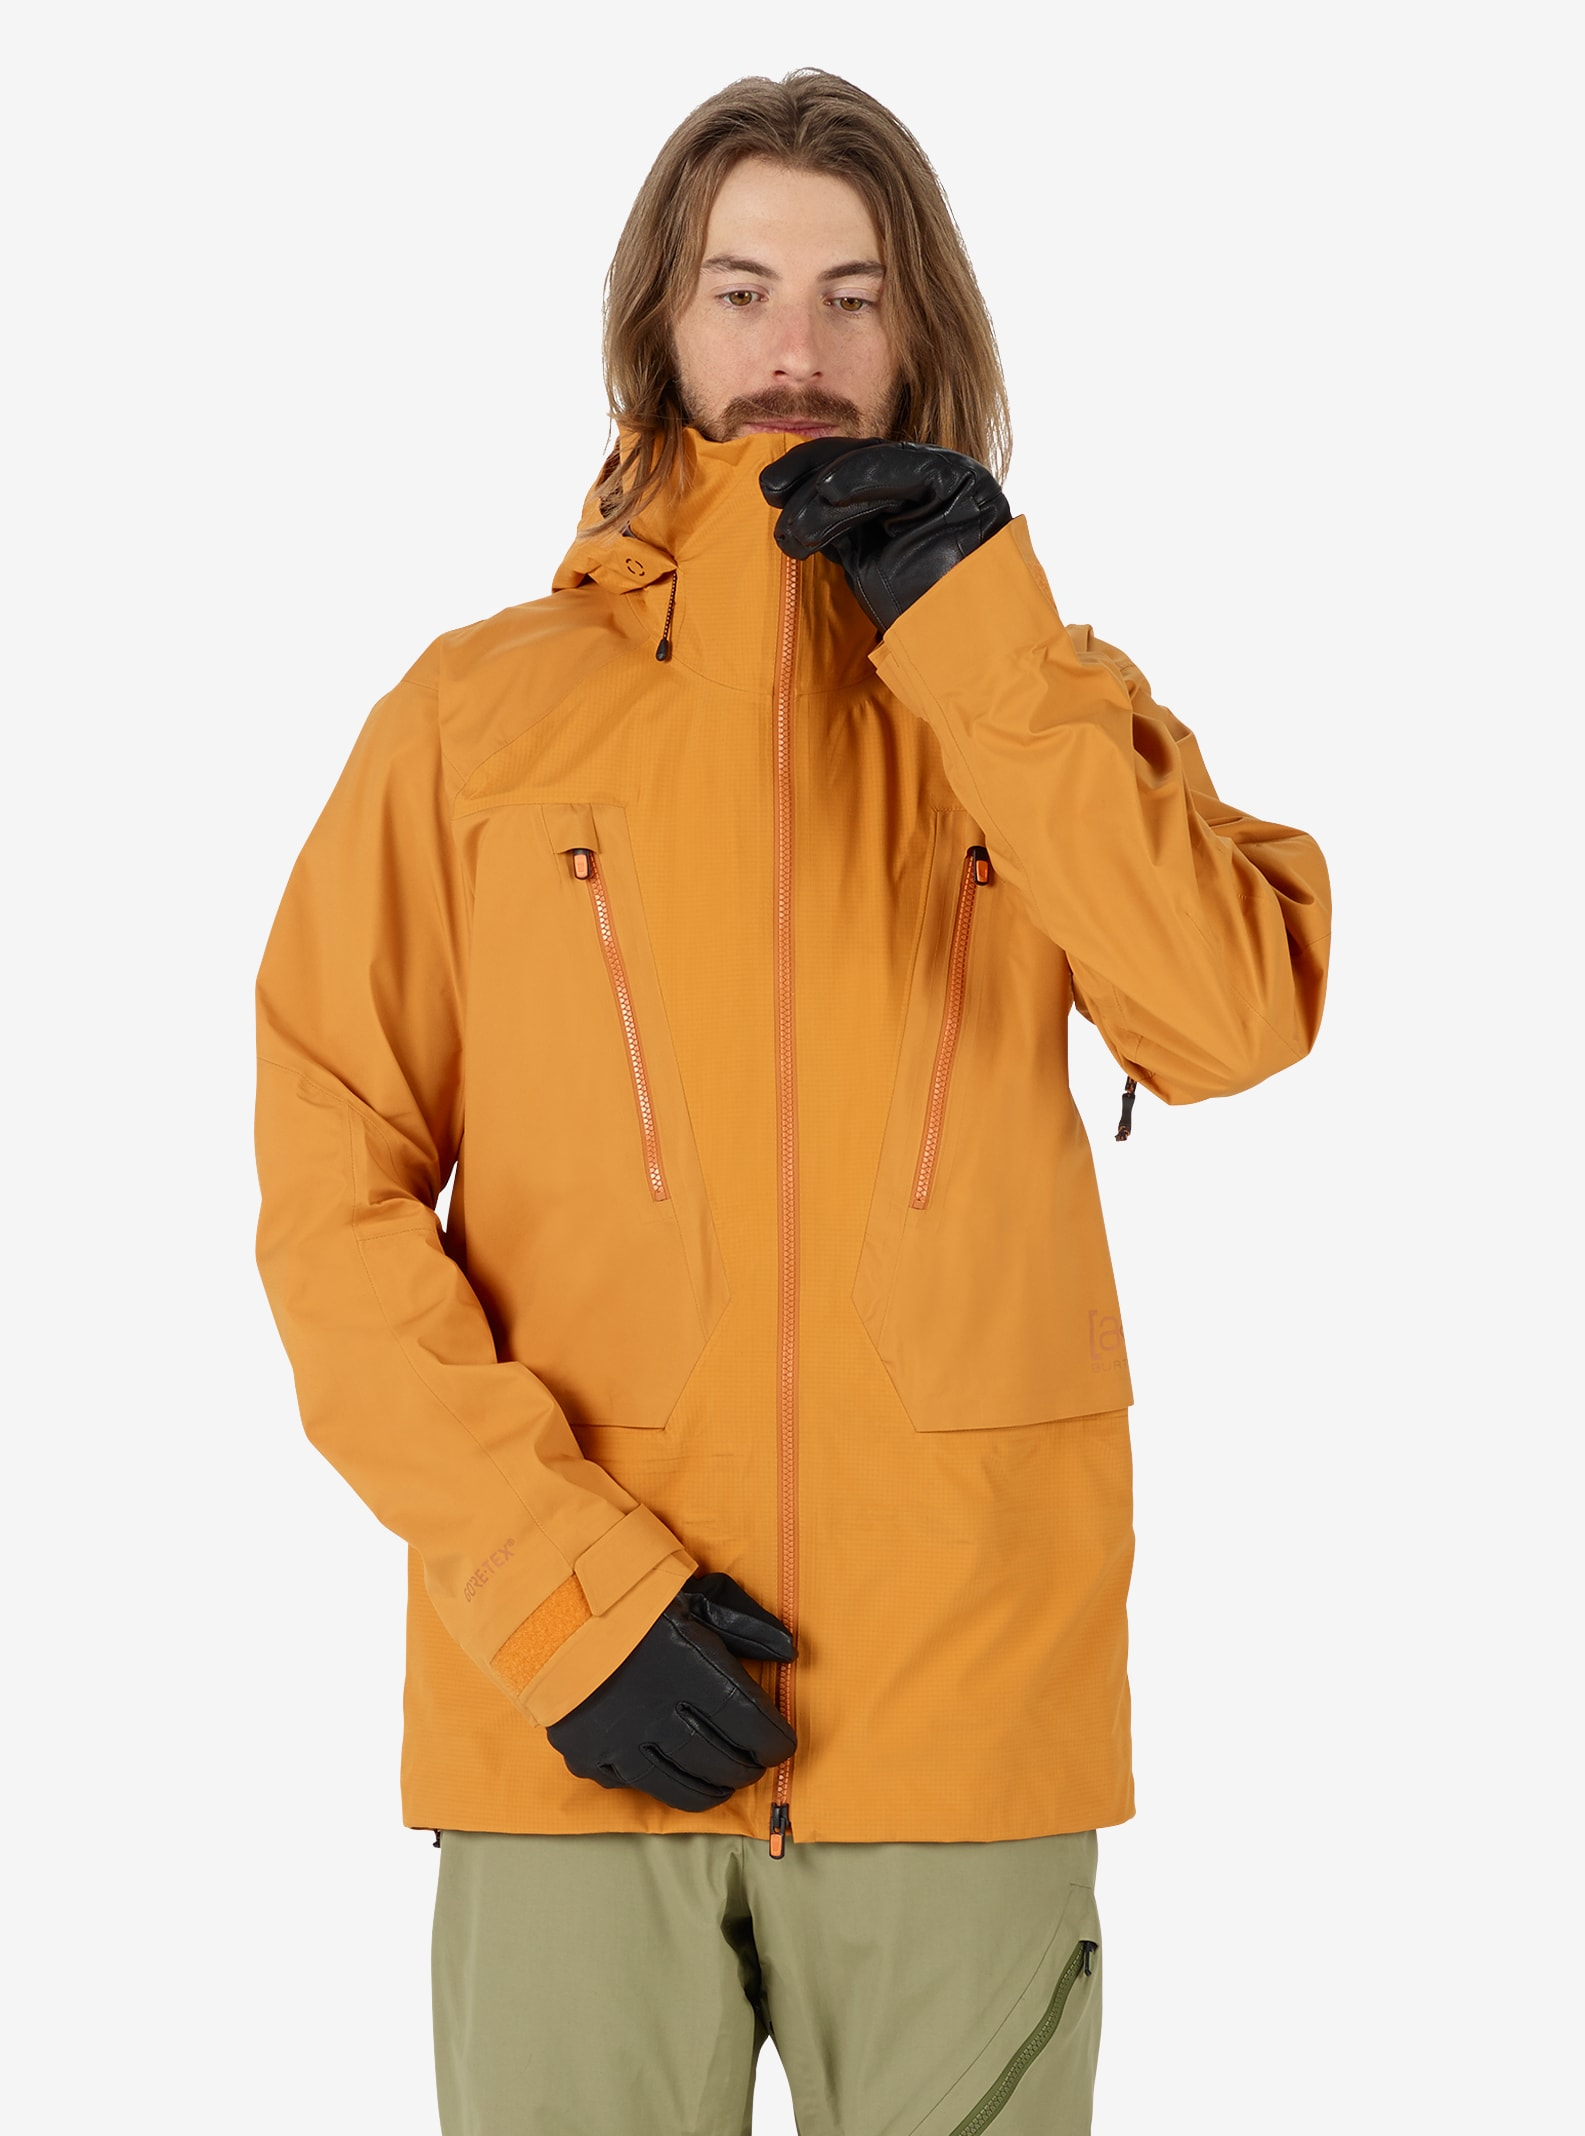 Men's Burton [ak] 3L GORE‑TEX® Freebird Jacket shown in Golden Oak